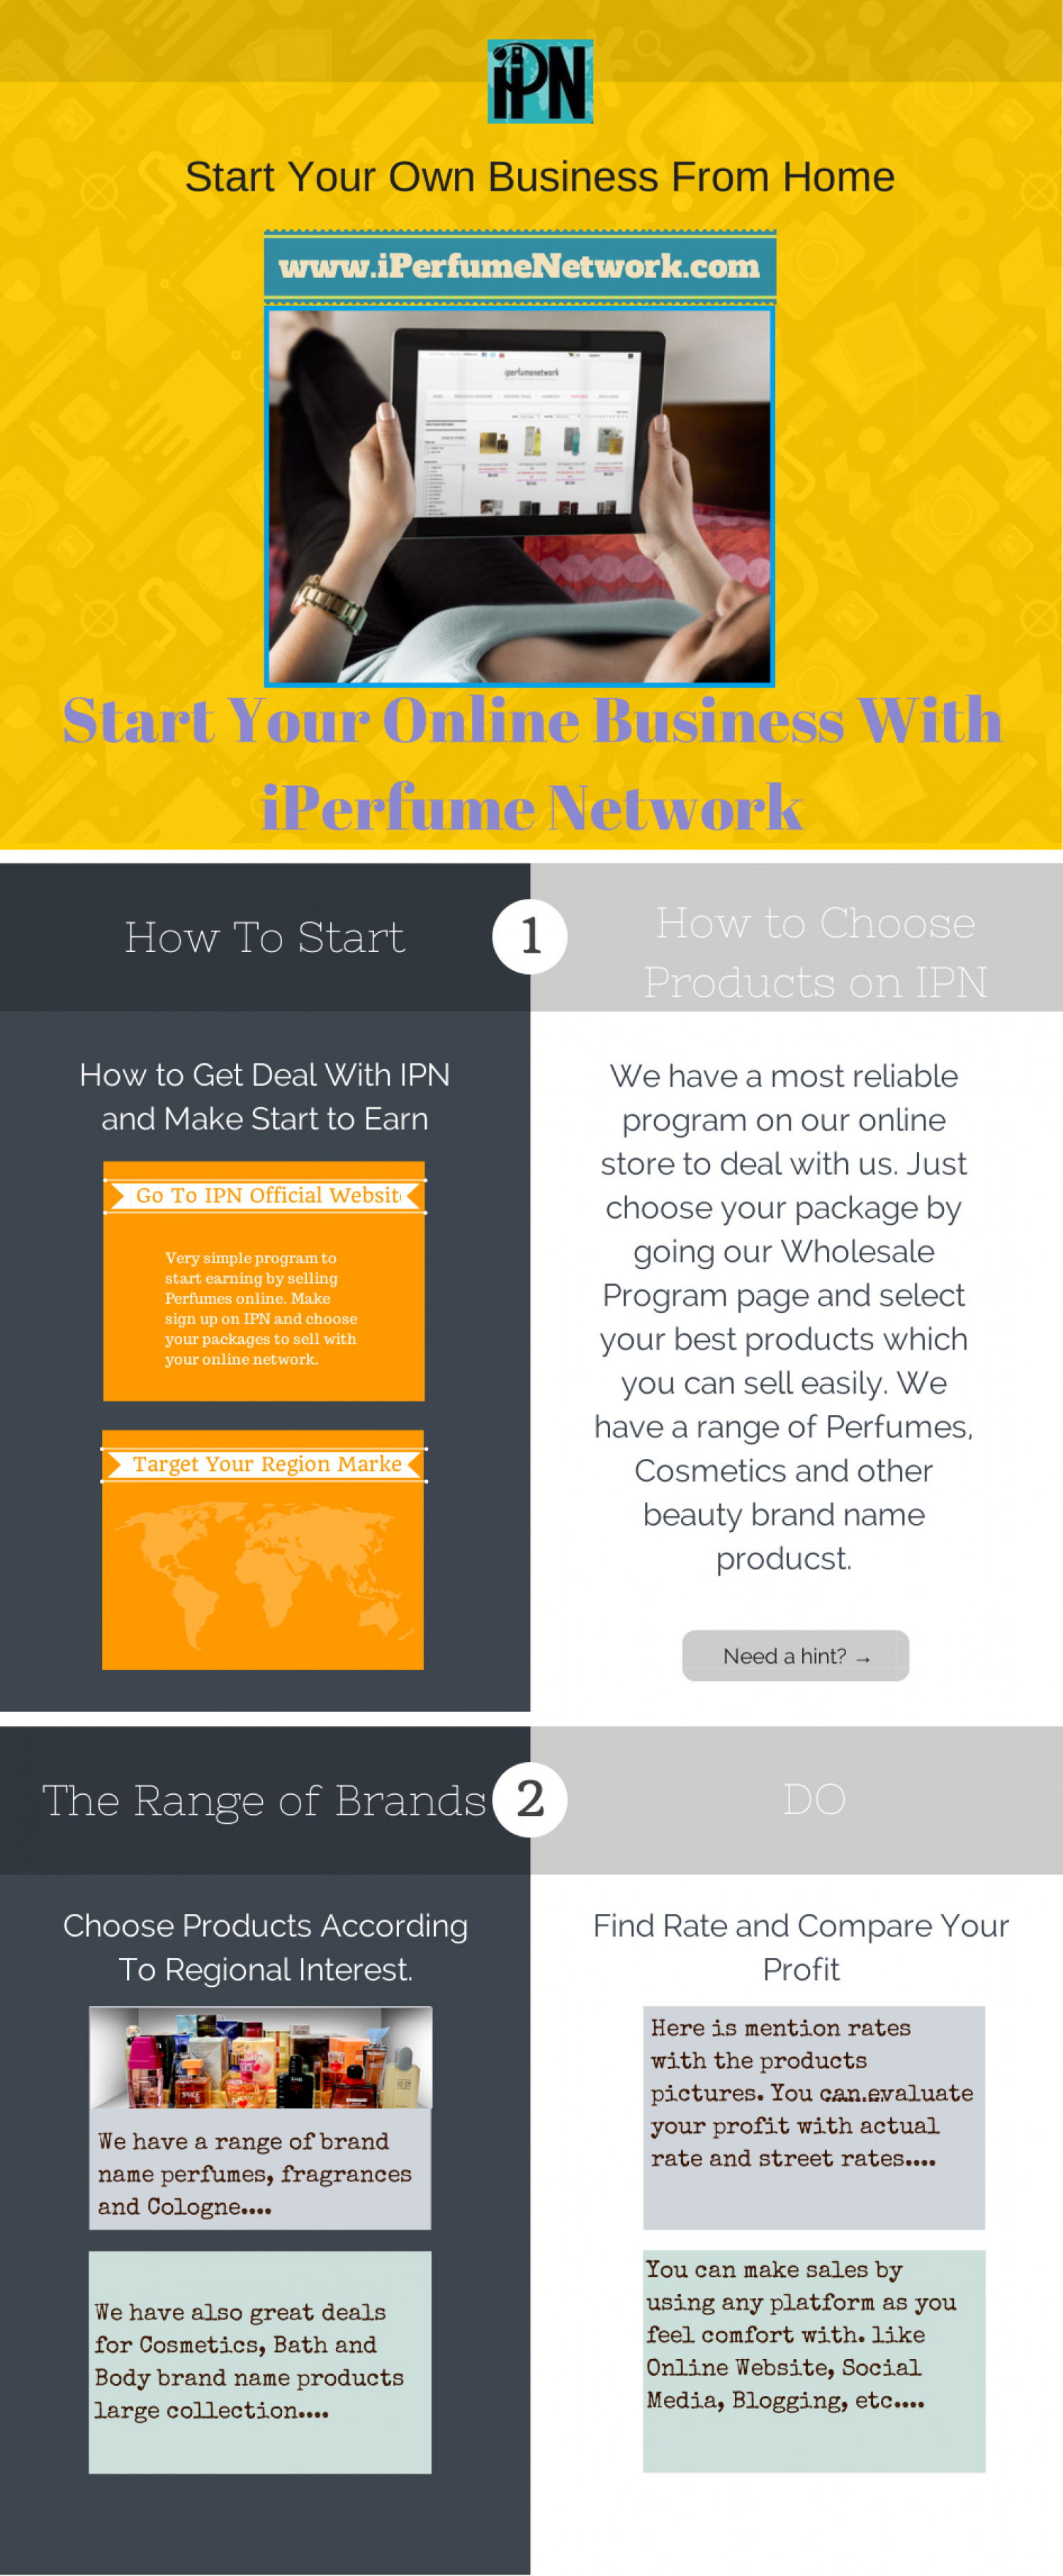 Start Your Own Business by Selling Perfume Online Infographic